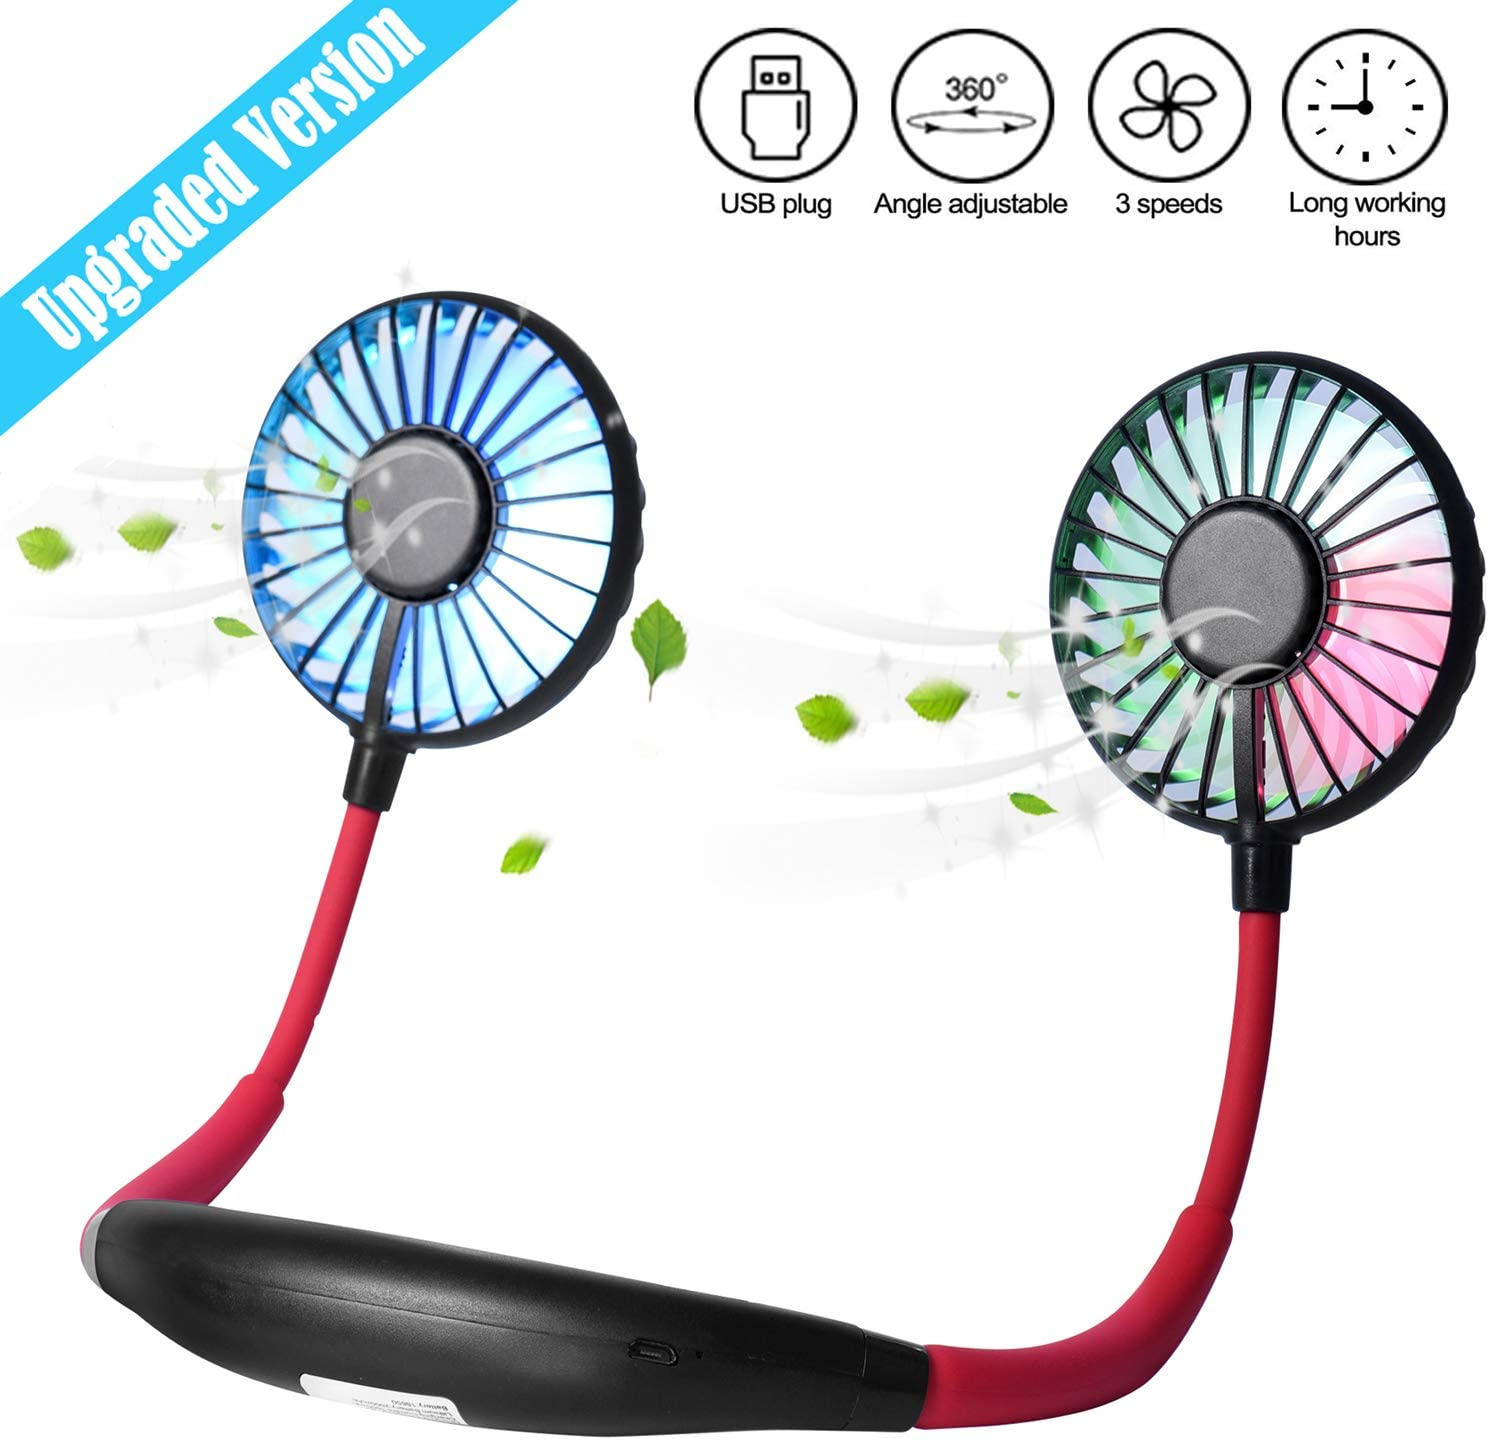 Air Cooler Adjustable Speed Mini Portable Fan USB Rechargeable Creative Cute Fan Mirror Style Color : Black